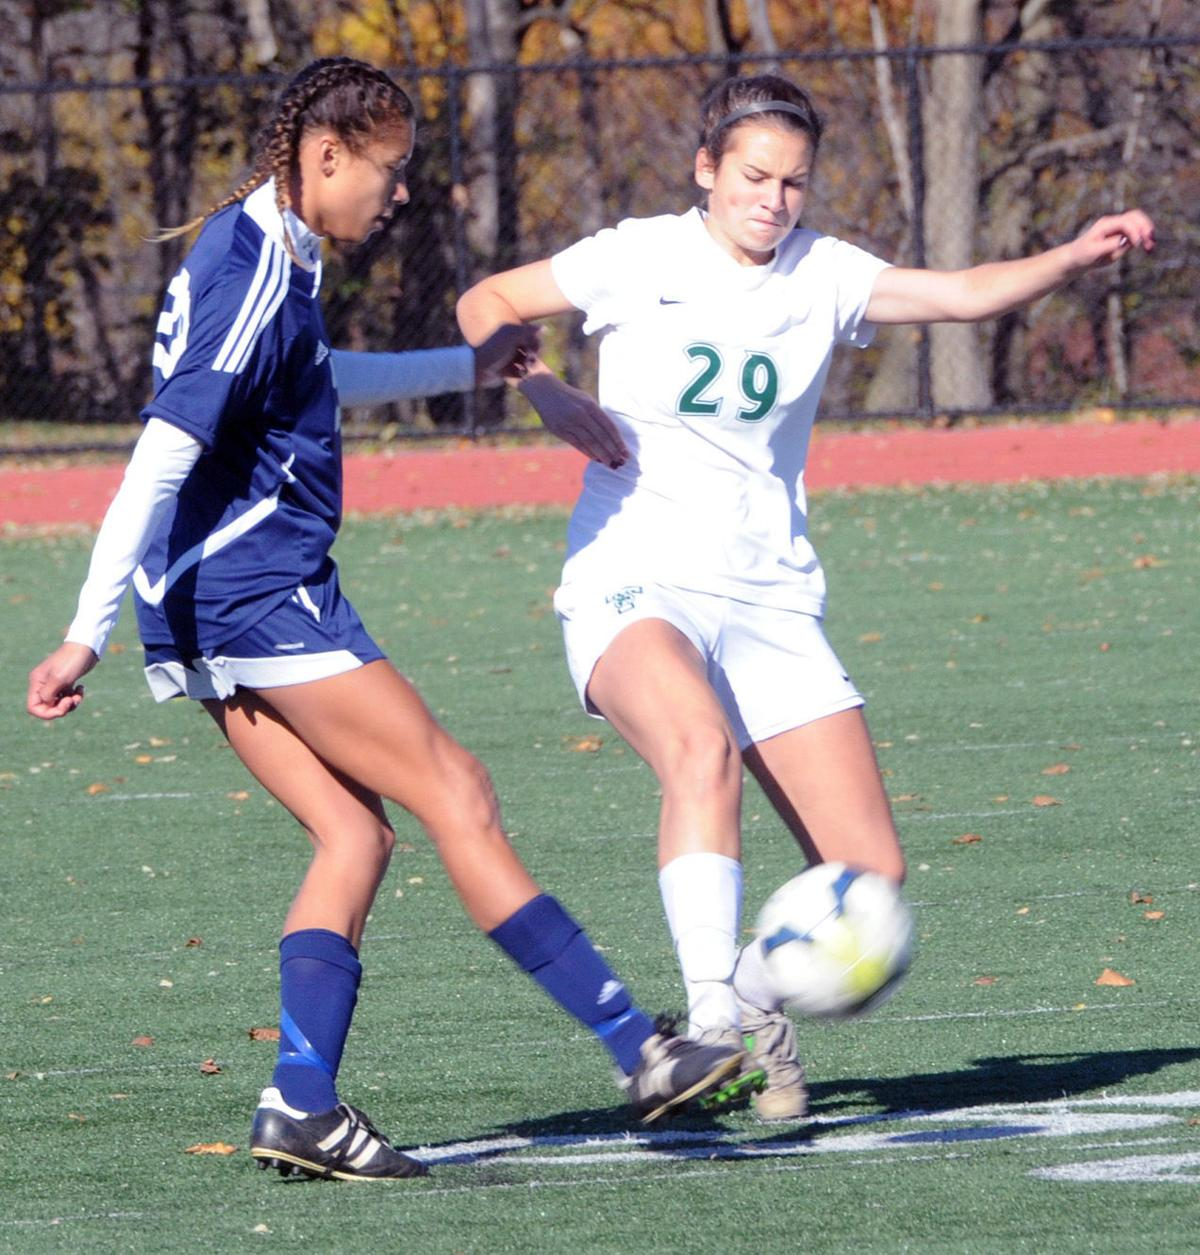 montoursville girls Sullivan county's mccarthy signs with clarion february 9, 2018 • brian fees when macy mccarthy looked at what was happening with the clarion soccer team, she saw something very similar to what happened at sullivan county.